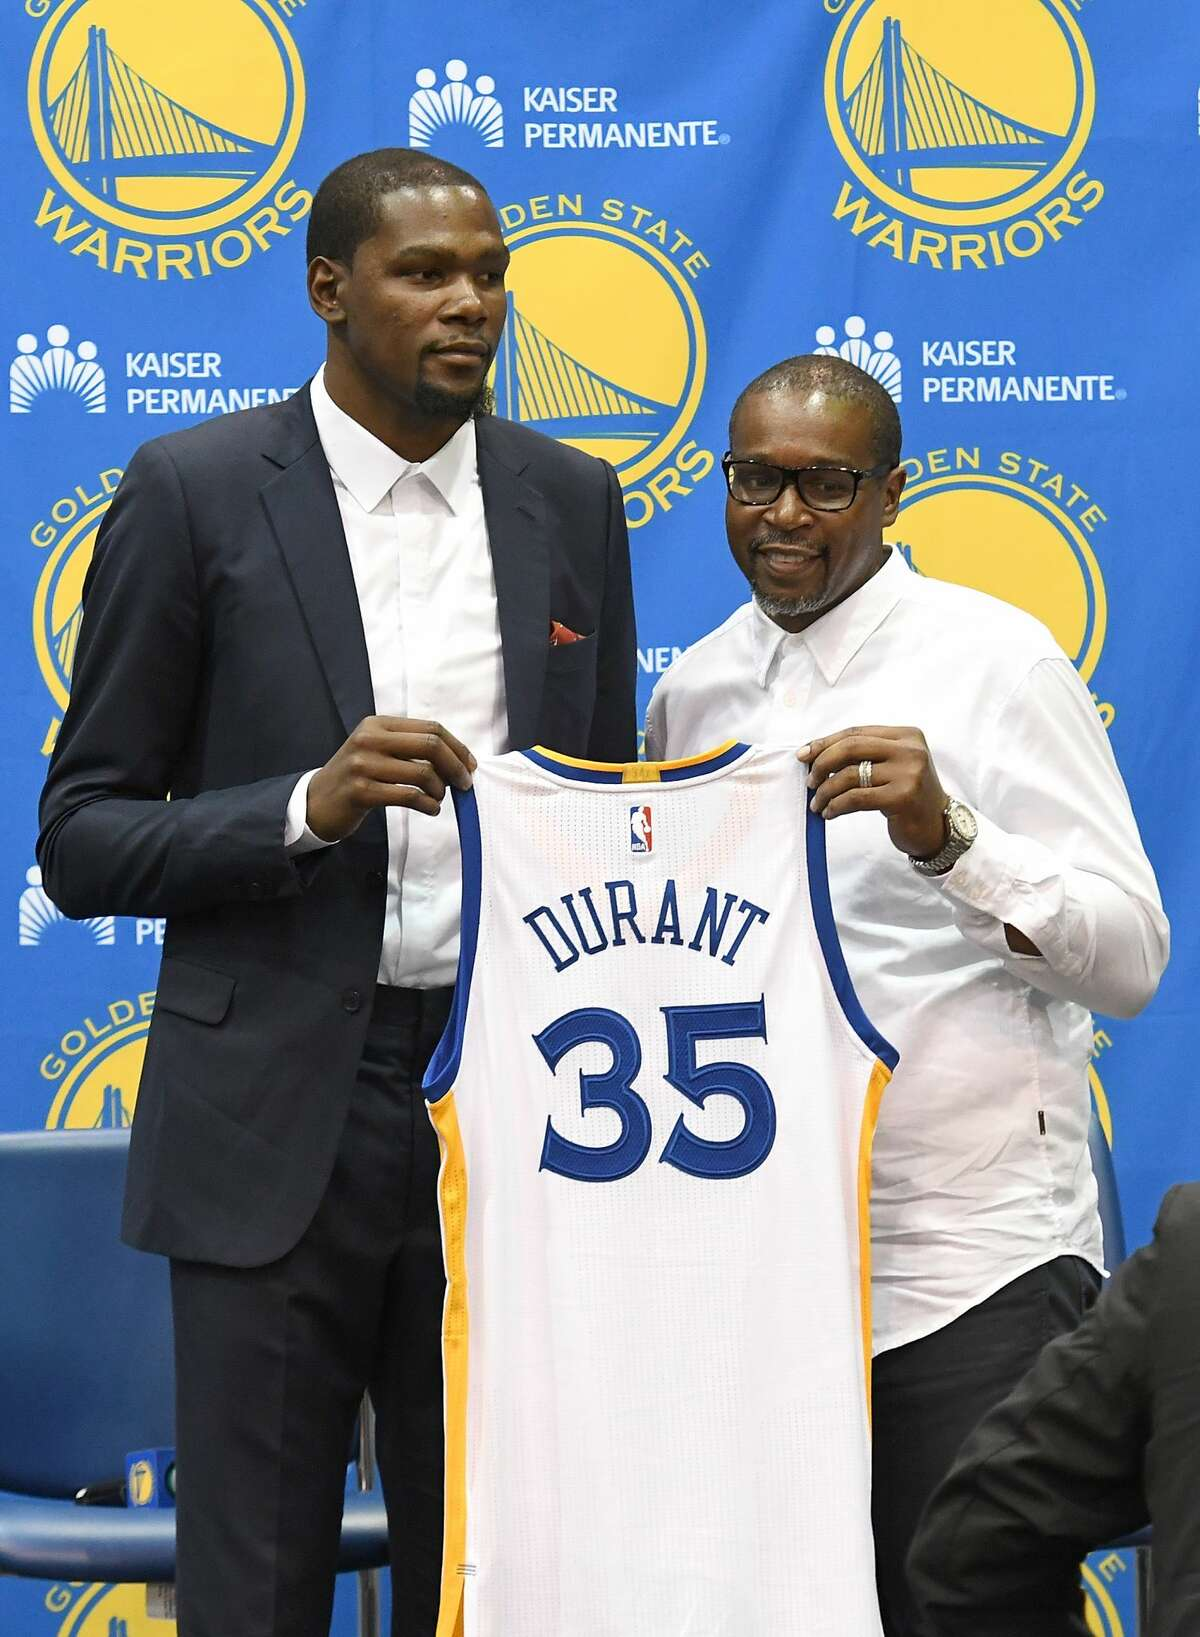 July 2016: Durant officially signs with the Golden State Warriors. Green met with Durant along with Stephen Curry, Klay Thompson and Andre Iguodala in the Hamptons to recruit the Thunder star to Golden State.